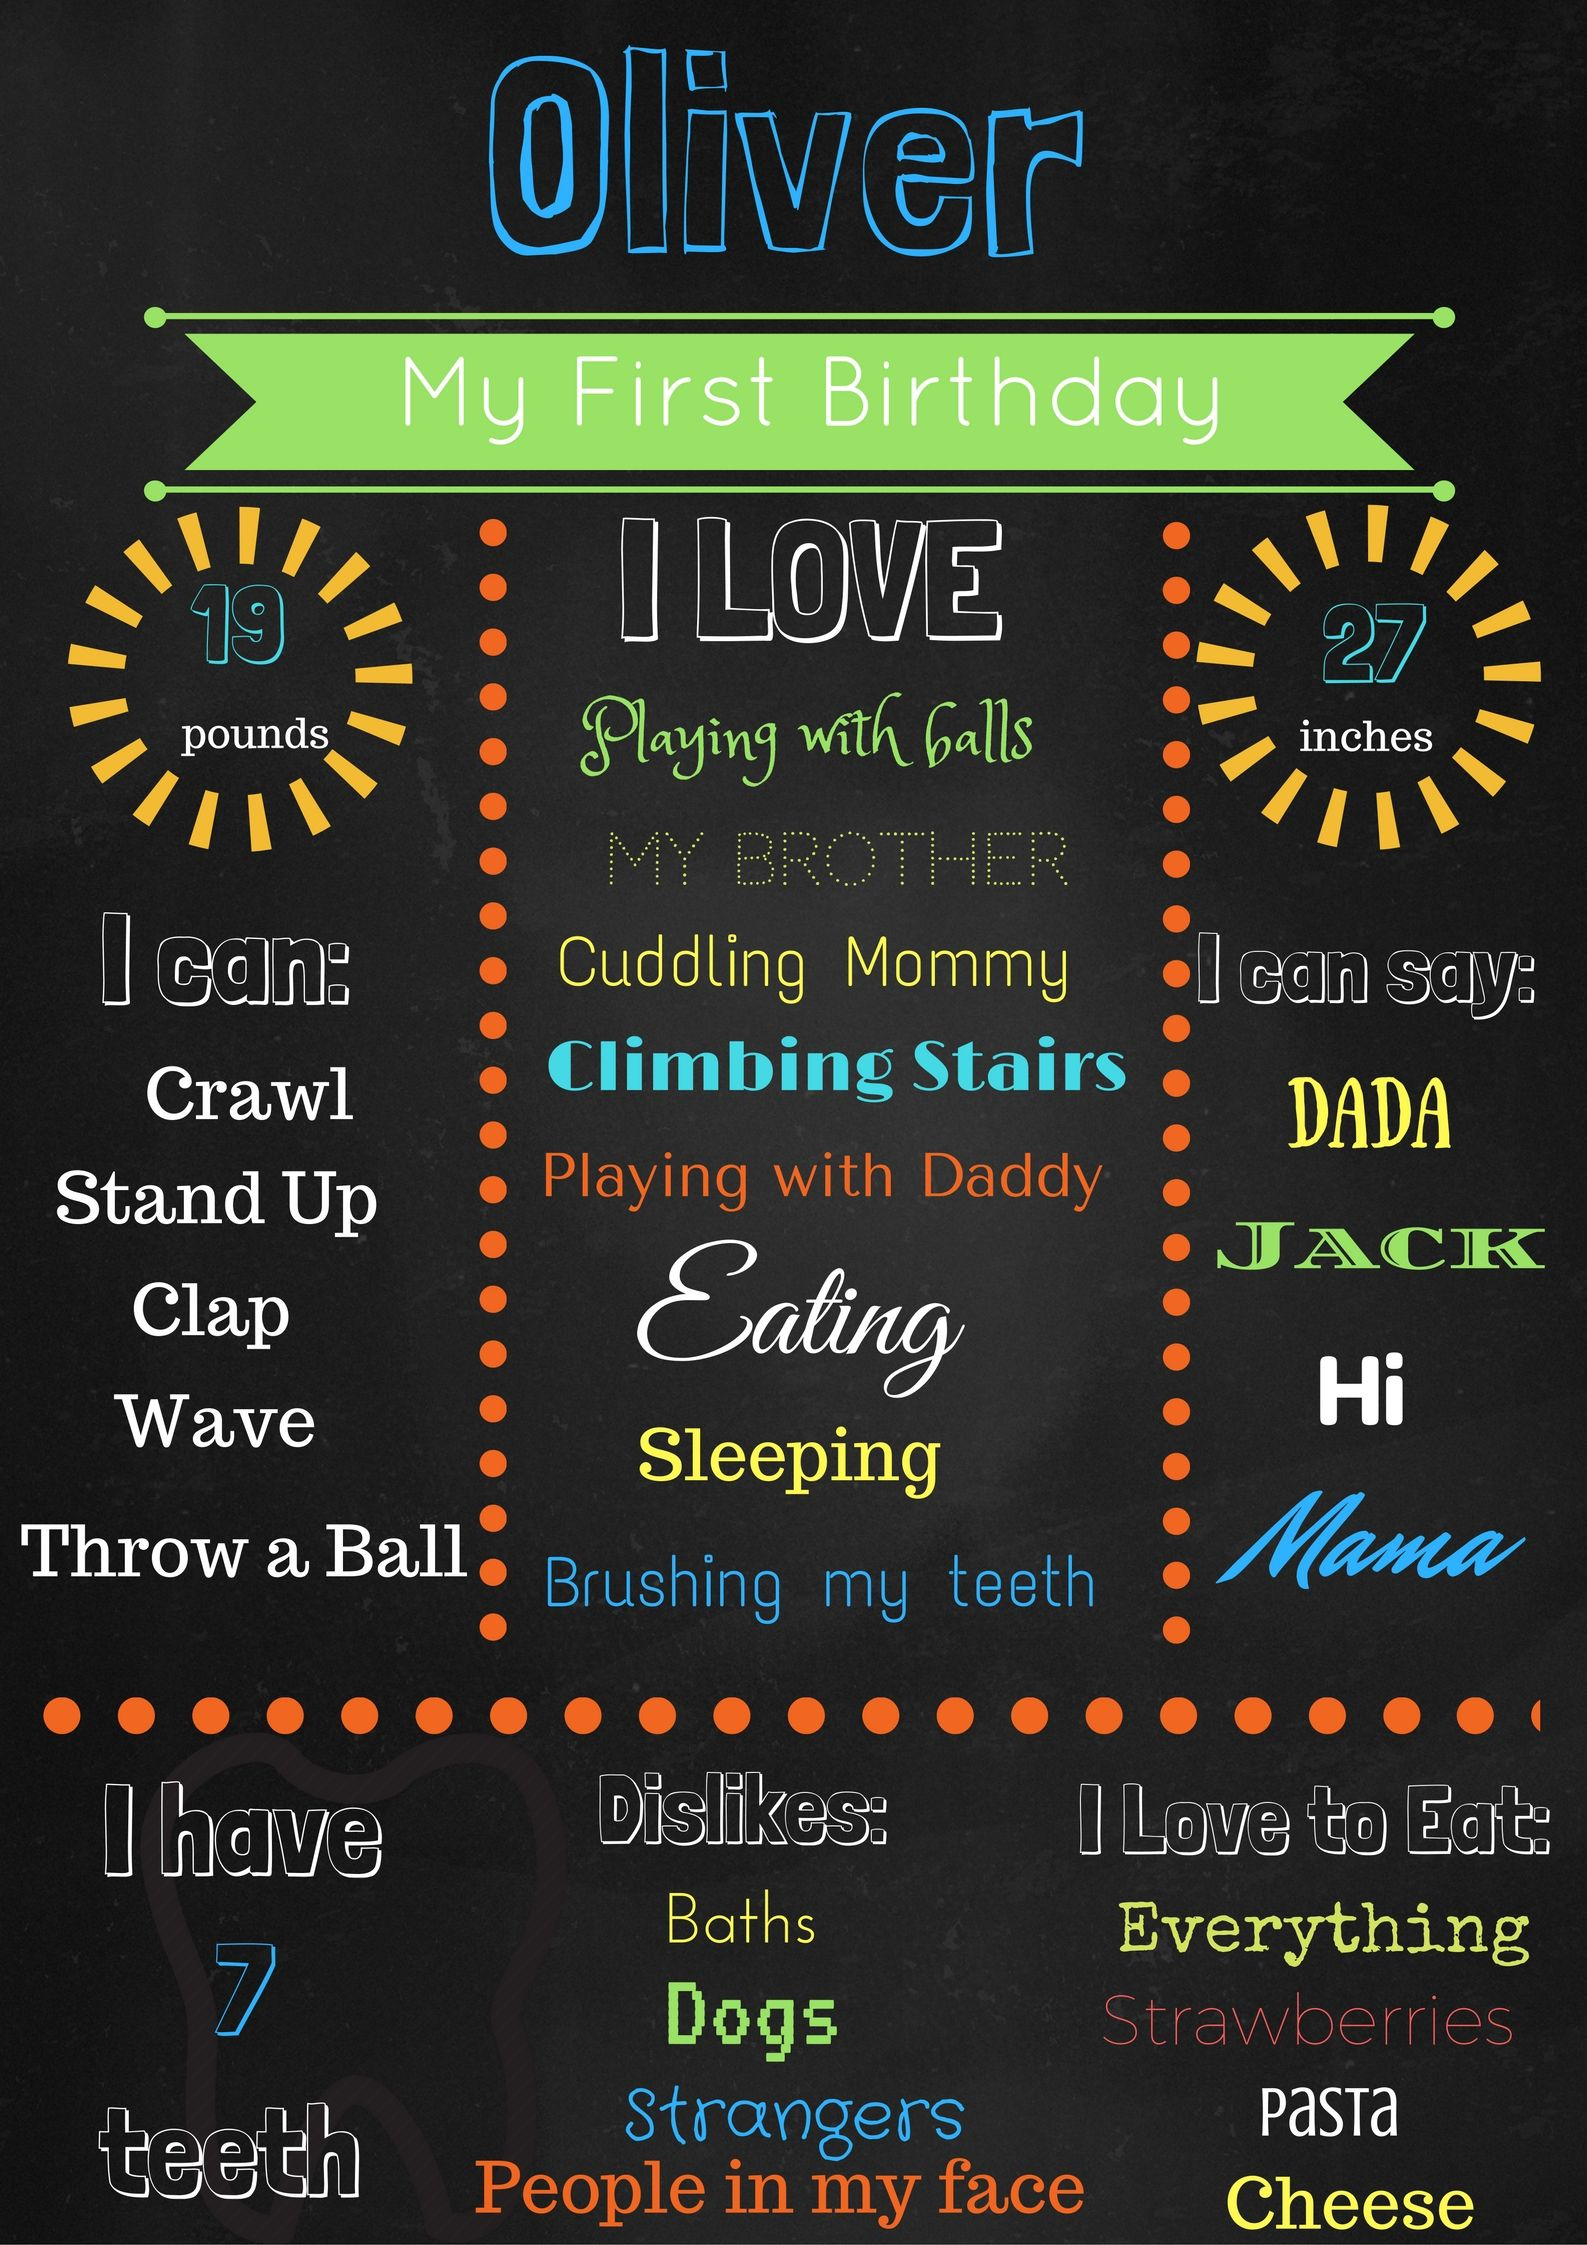 Birthday Posters With Photo Online Free